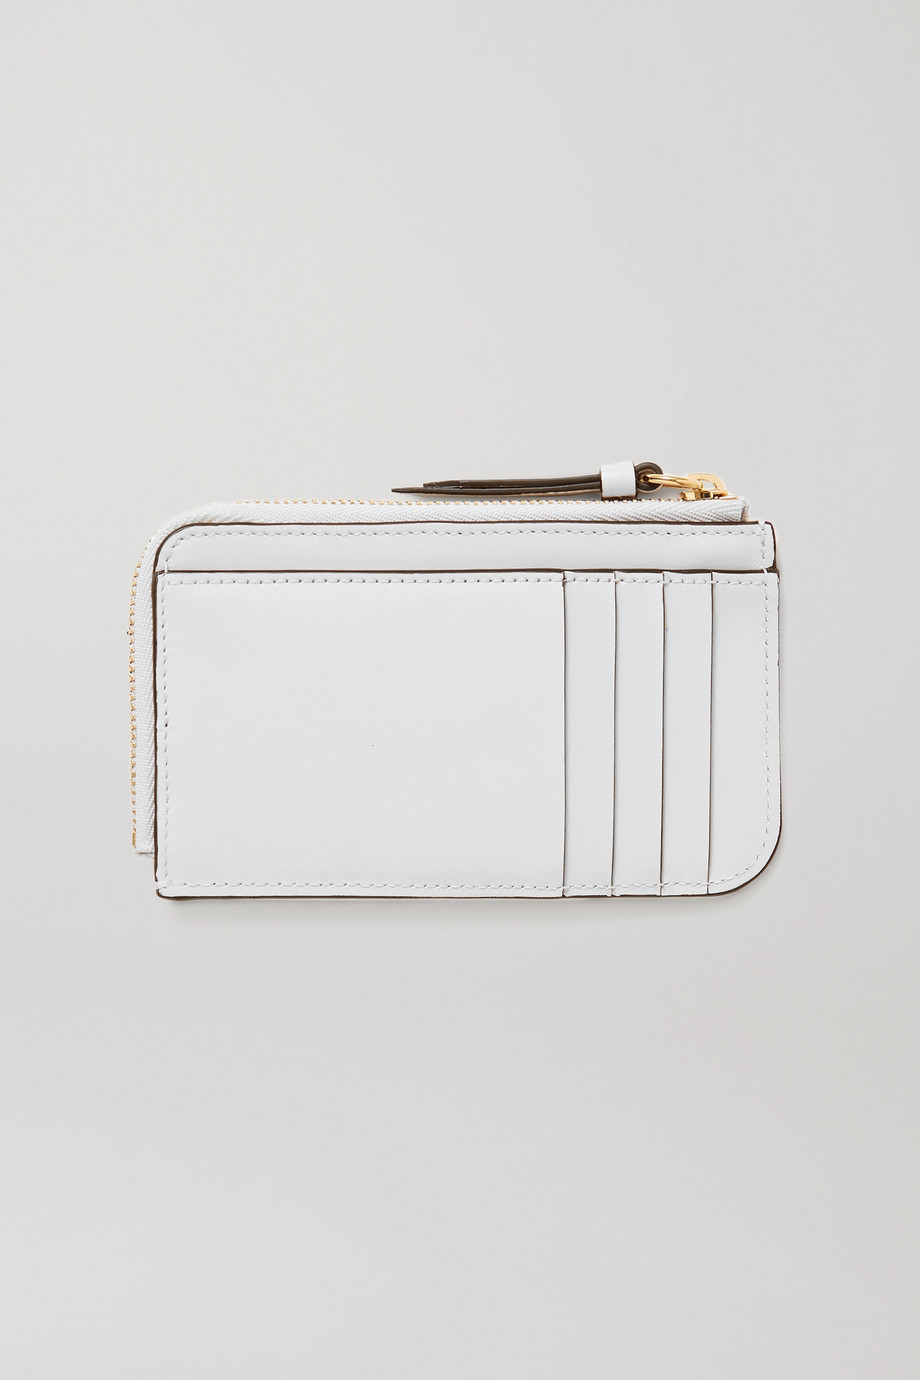 CHLOÉ C croc-effect leather cardholder